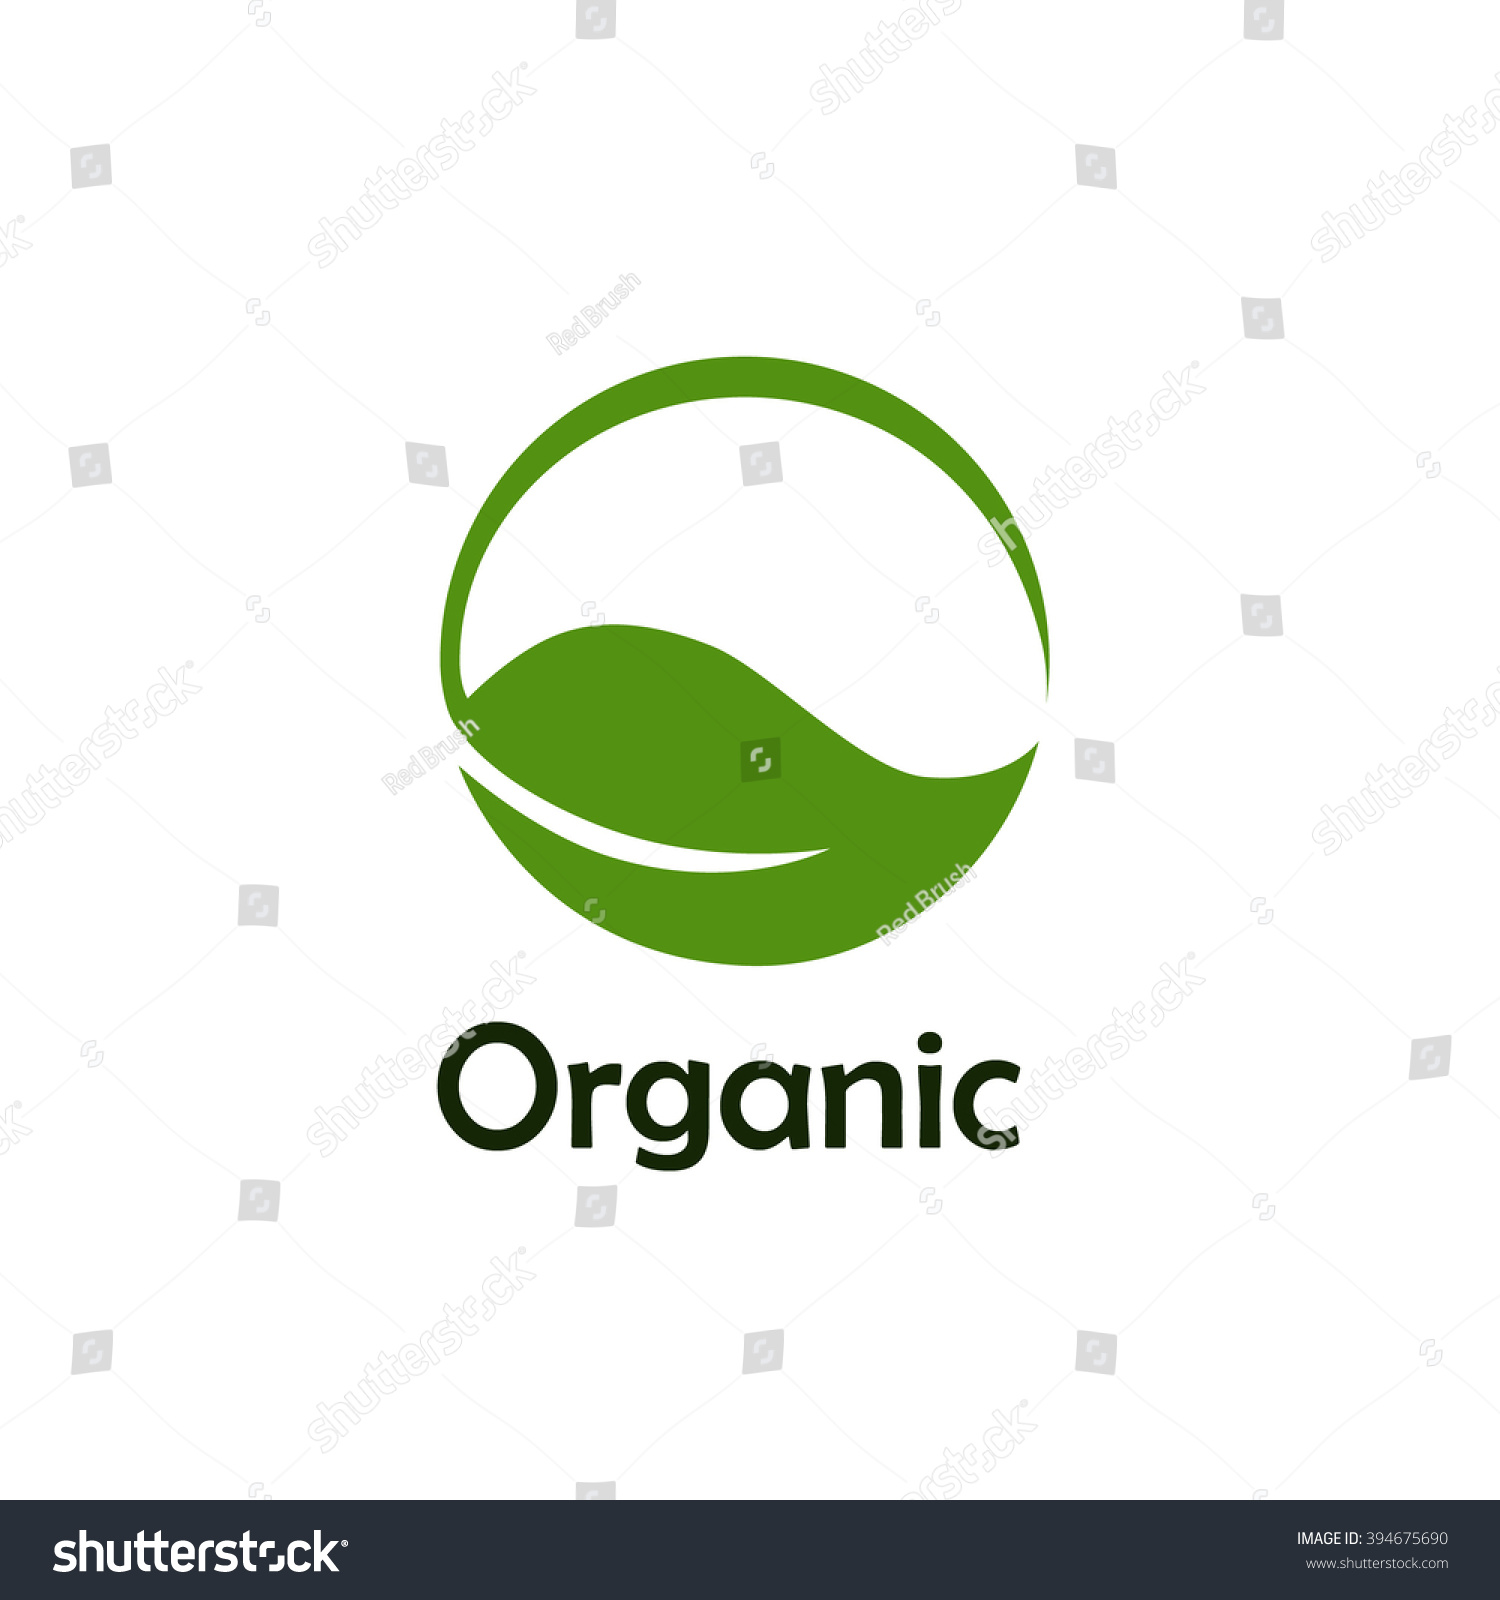 Organic logo design examples from 48hourslogo